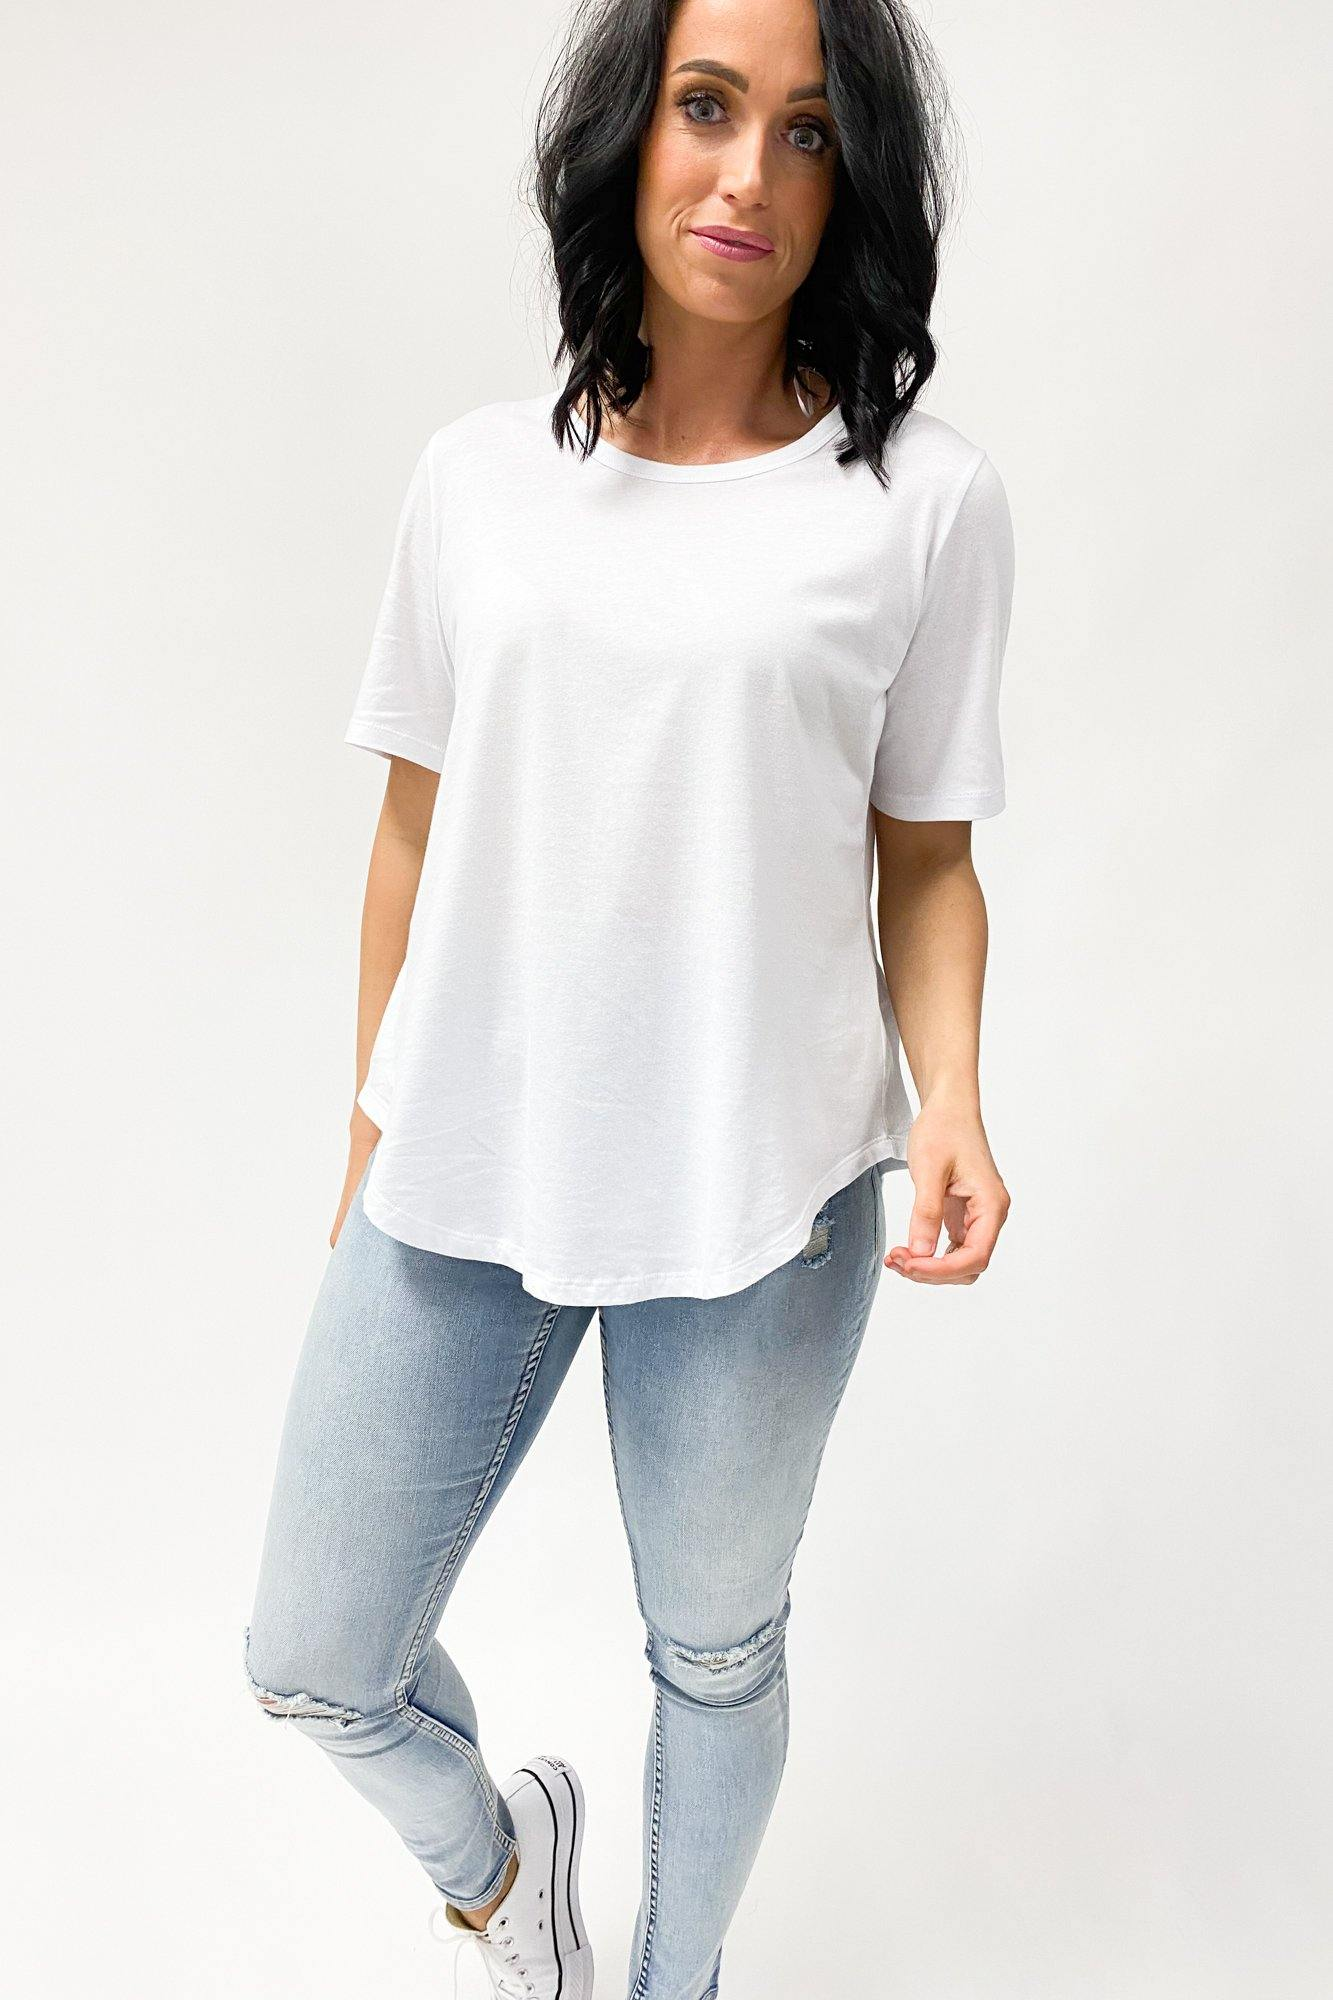 Betty Basics Ariana Tee White